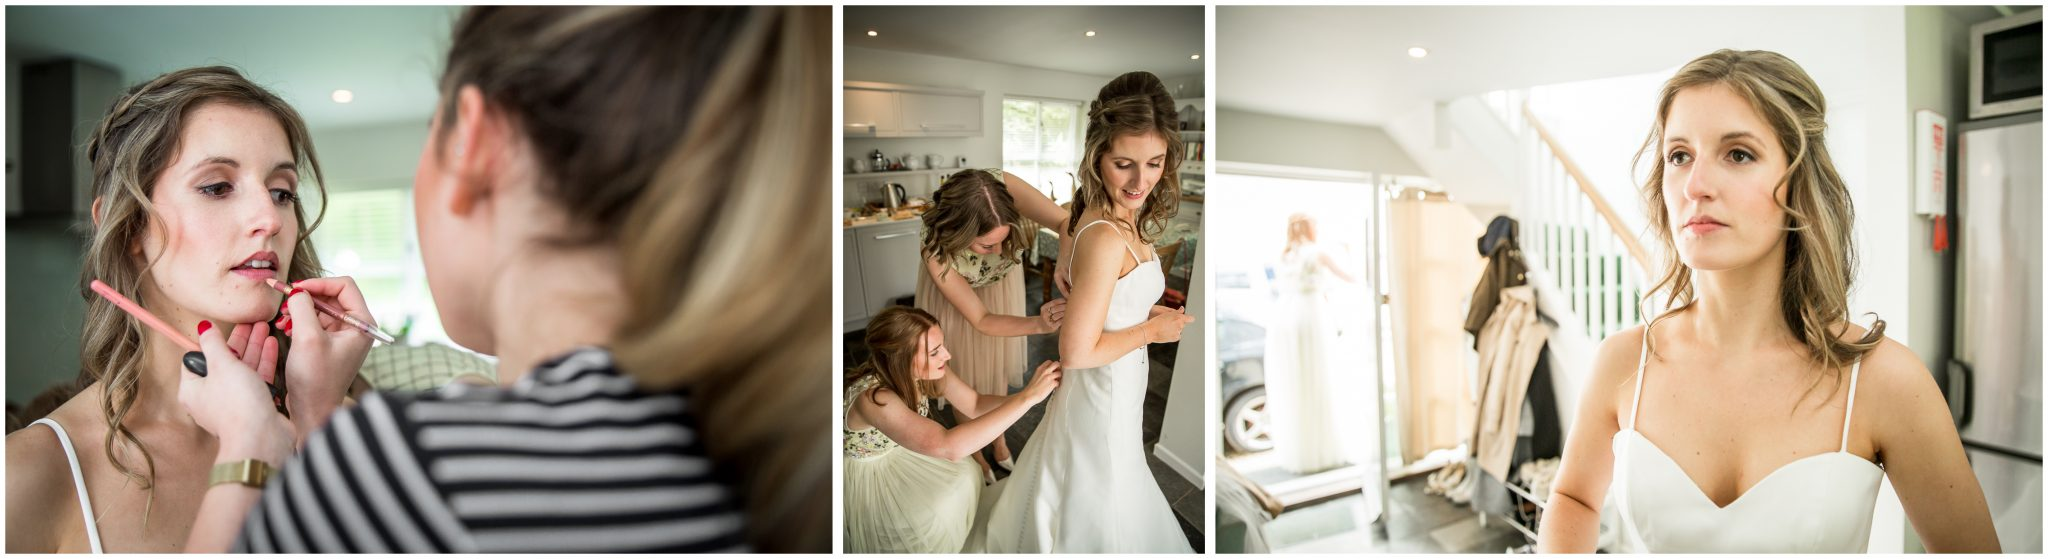 Finishing touches for bride during bridal preparations